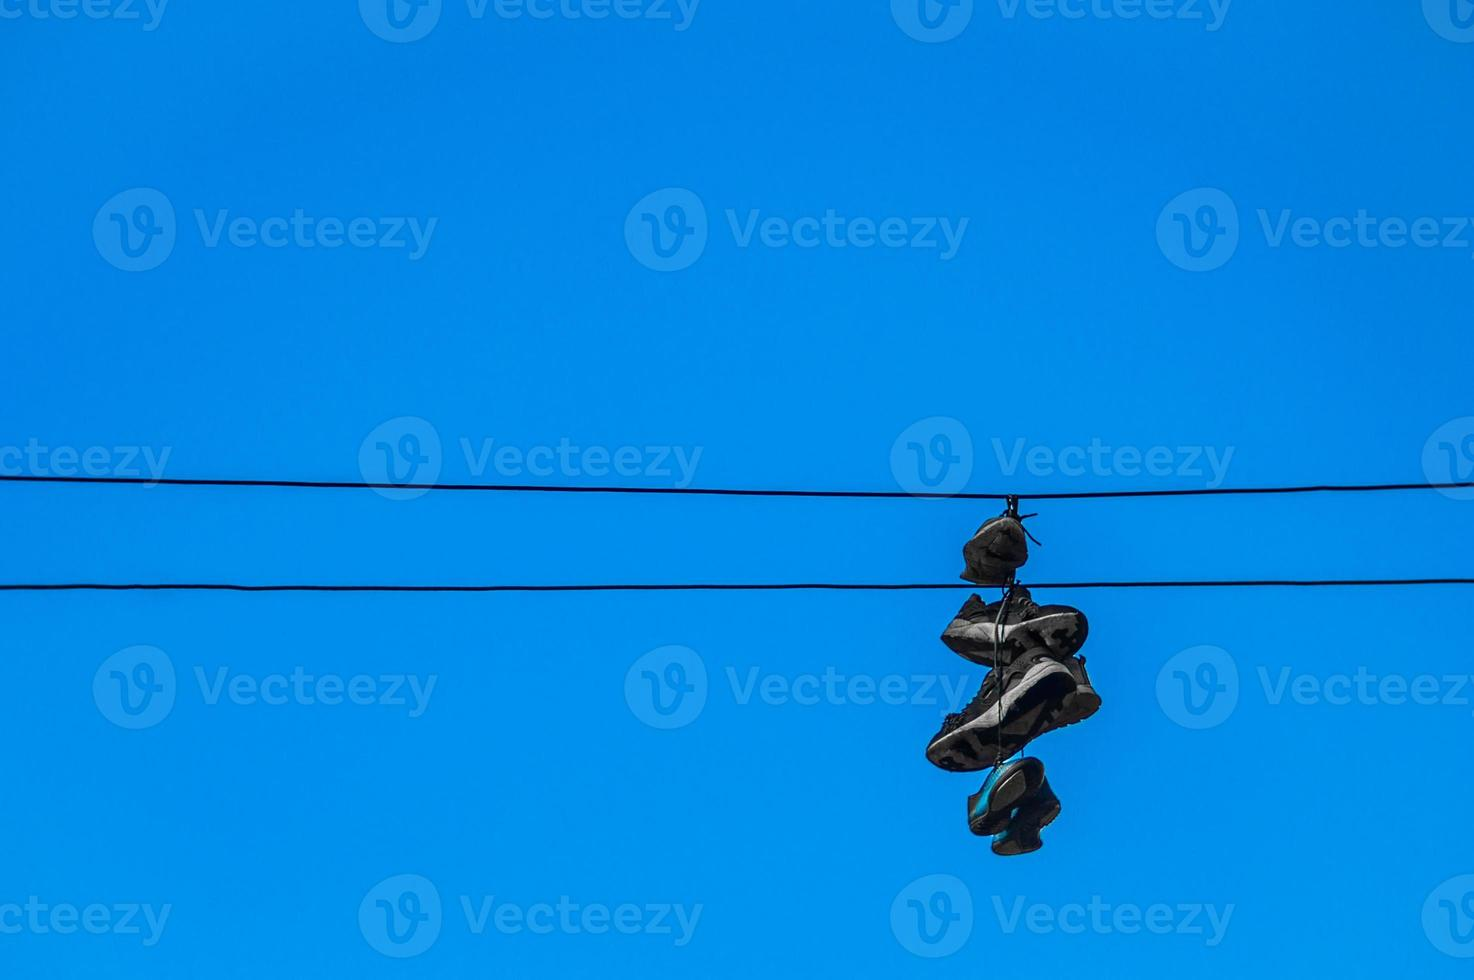 Sneakers hanging on wires against a blue sky photo